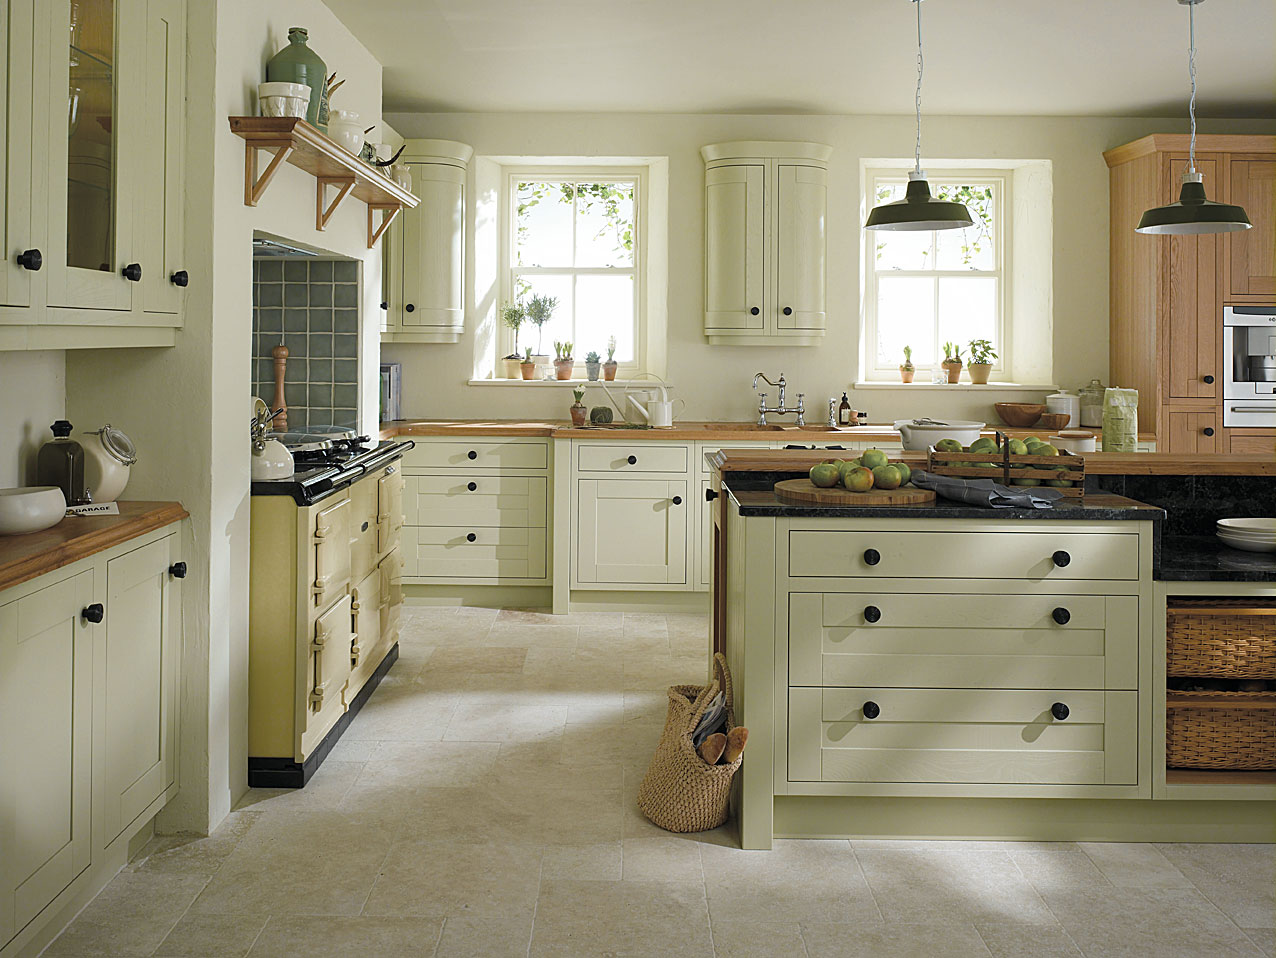 Kitchen storage ideas design cabinets islands kitchens traditional white antique best classic Best kitchen design for small kitchen